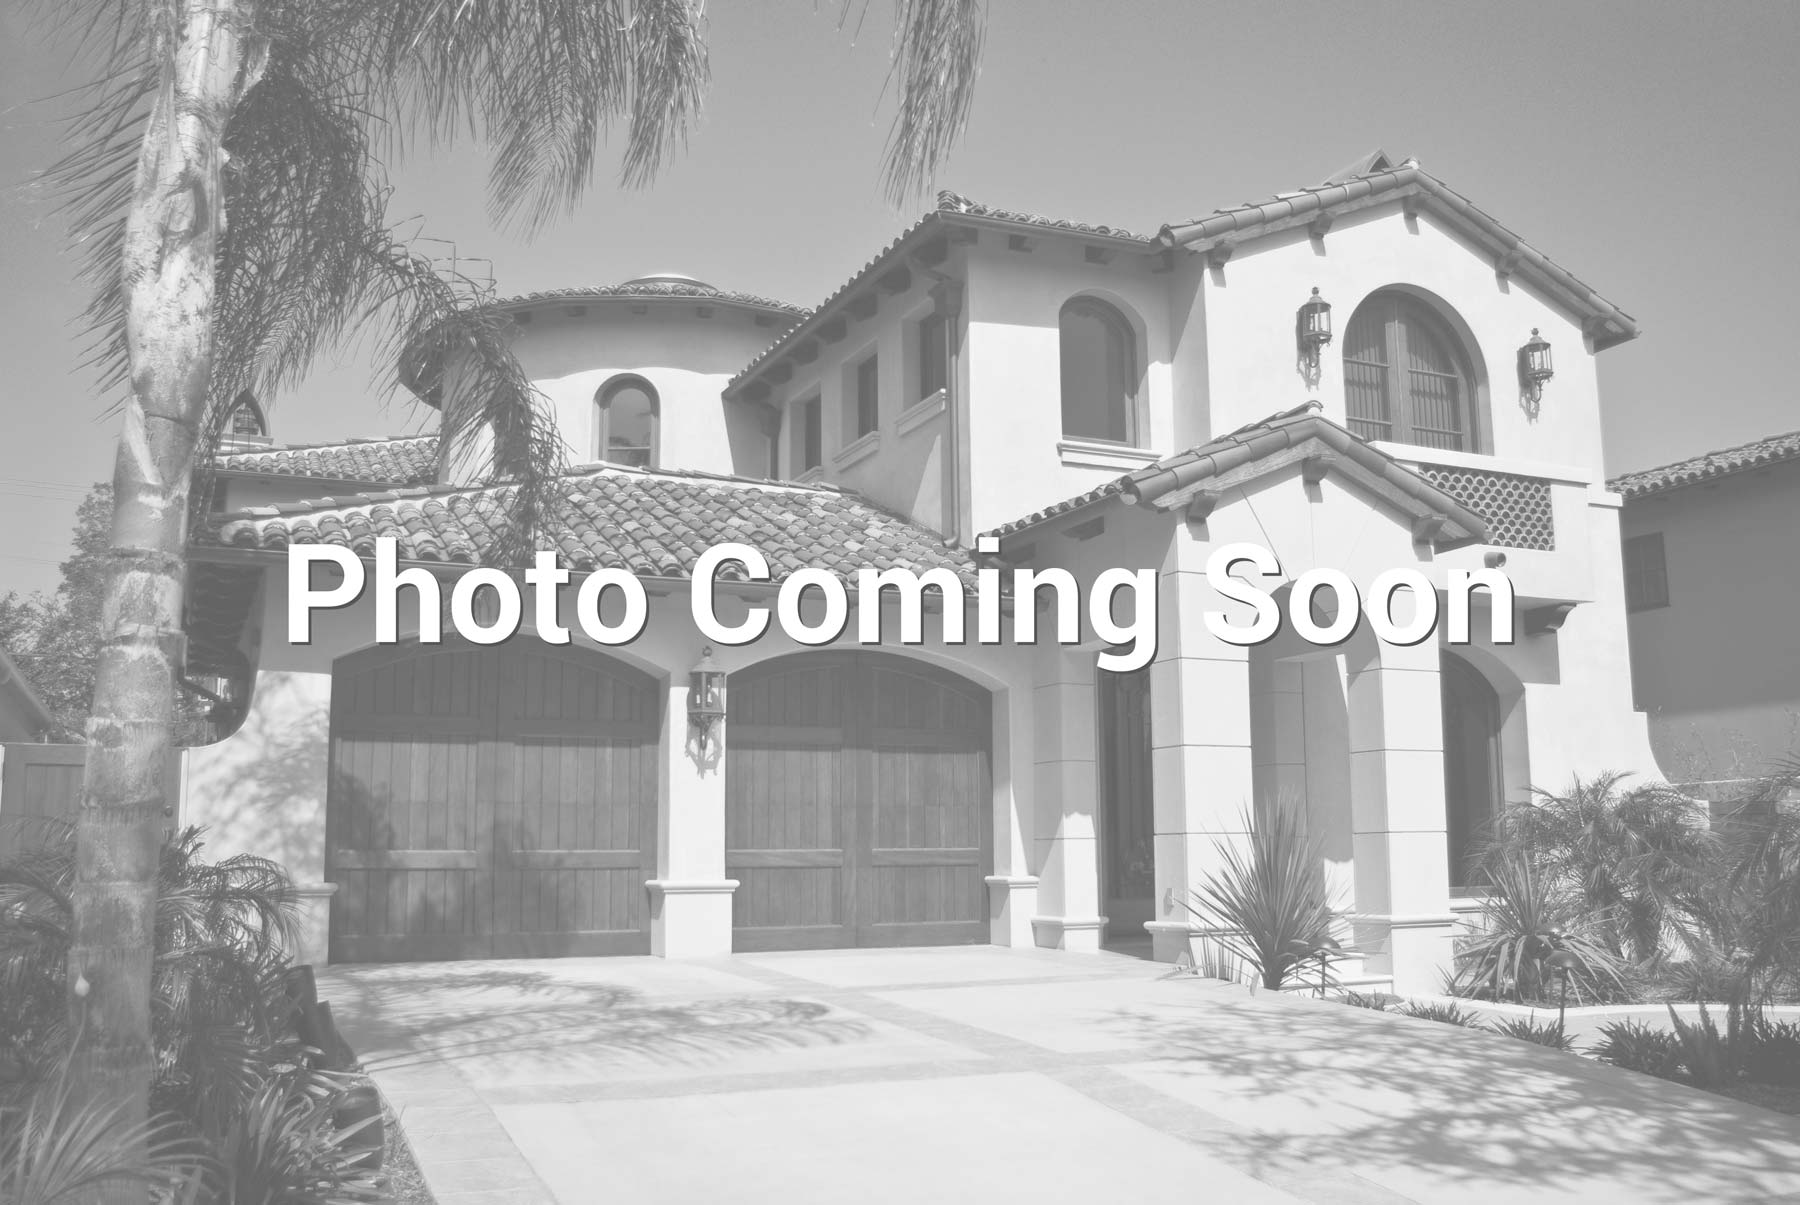 $495,000 - 3Br/2Ba -  for Sale in Fallbrook, Fallbrook